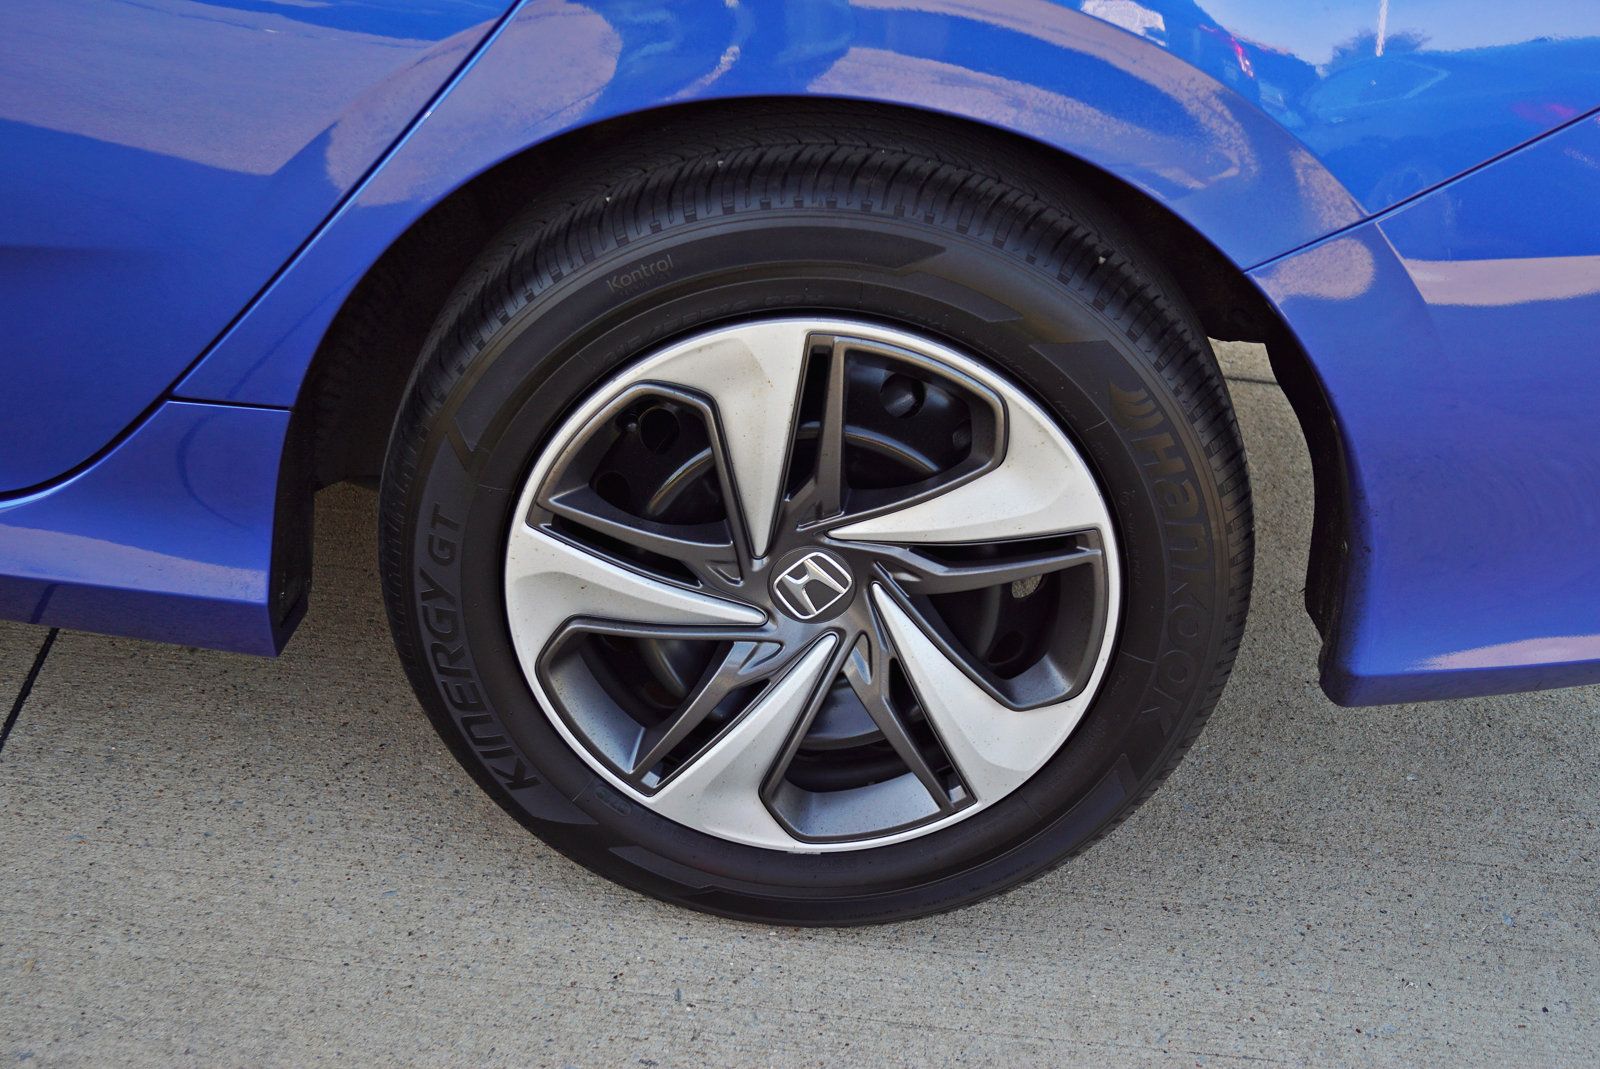 Certified Pre-Owned 2019 Honda Civic LX